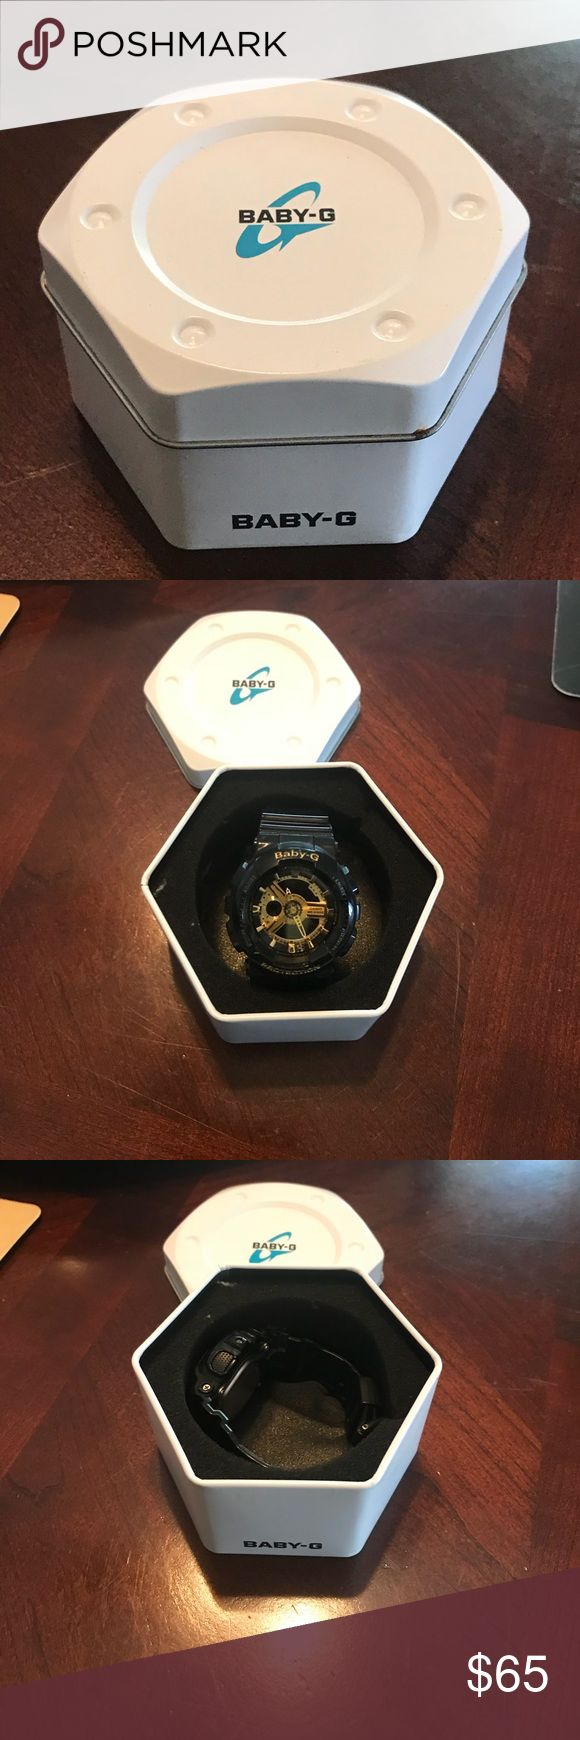 Baby G Shock watch black and Gold This Baby G Shock was purchased for my son and he only wore it a few time before he moved on to a gold MK watch therefore he totally lost interest in this watch. It was purchased for 125$ and is in like new condition. Make me an offer and it could be yours. It could potentially make a nice Christmas gift for someone. G Shock Accessories Watches